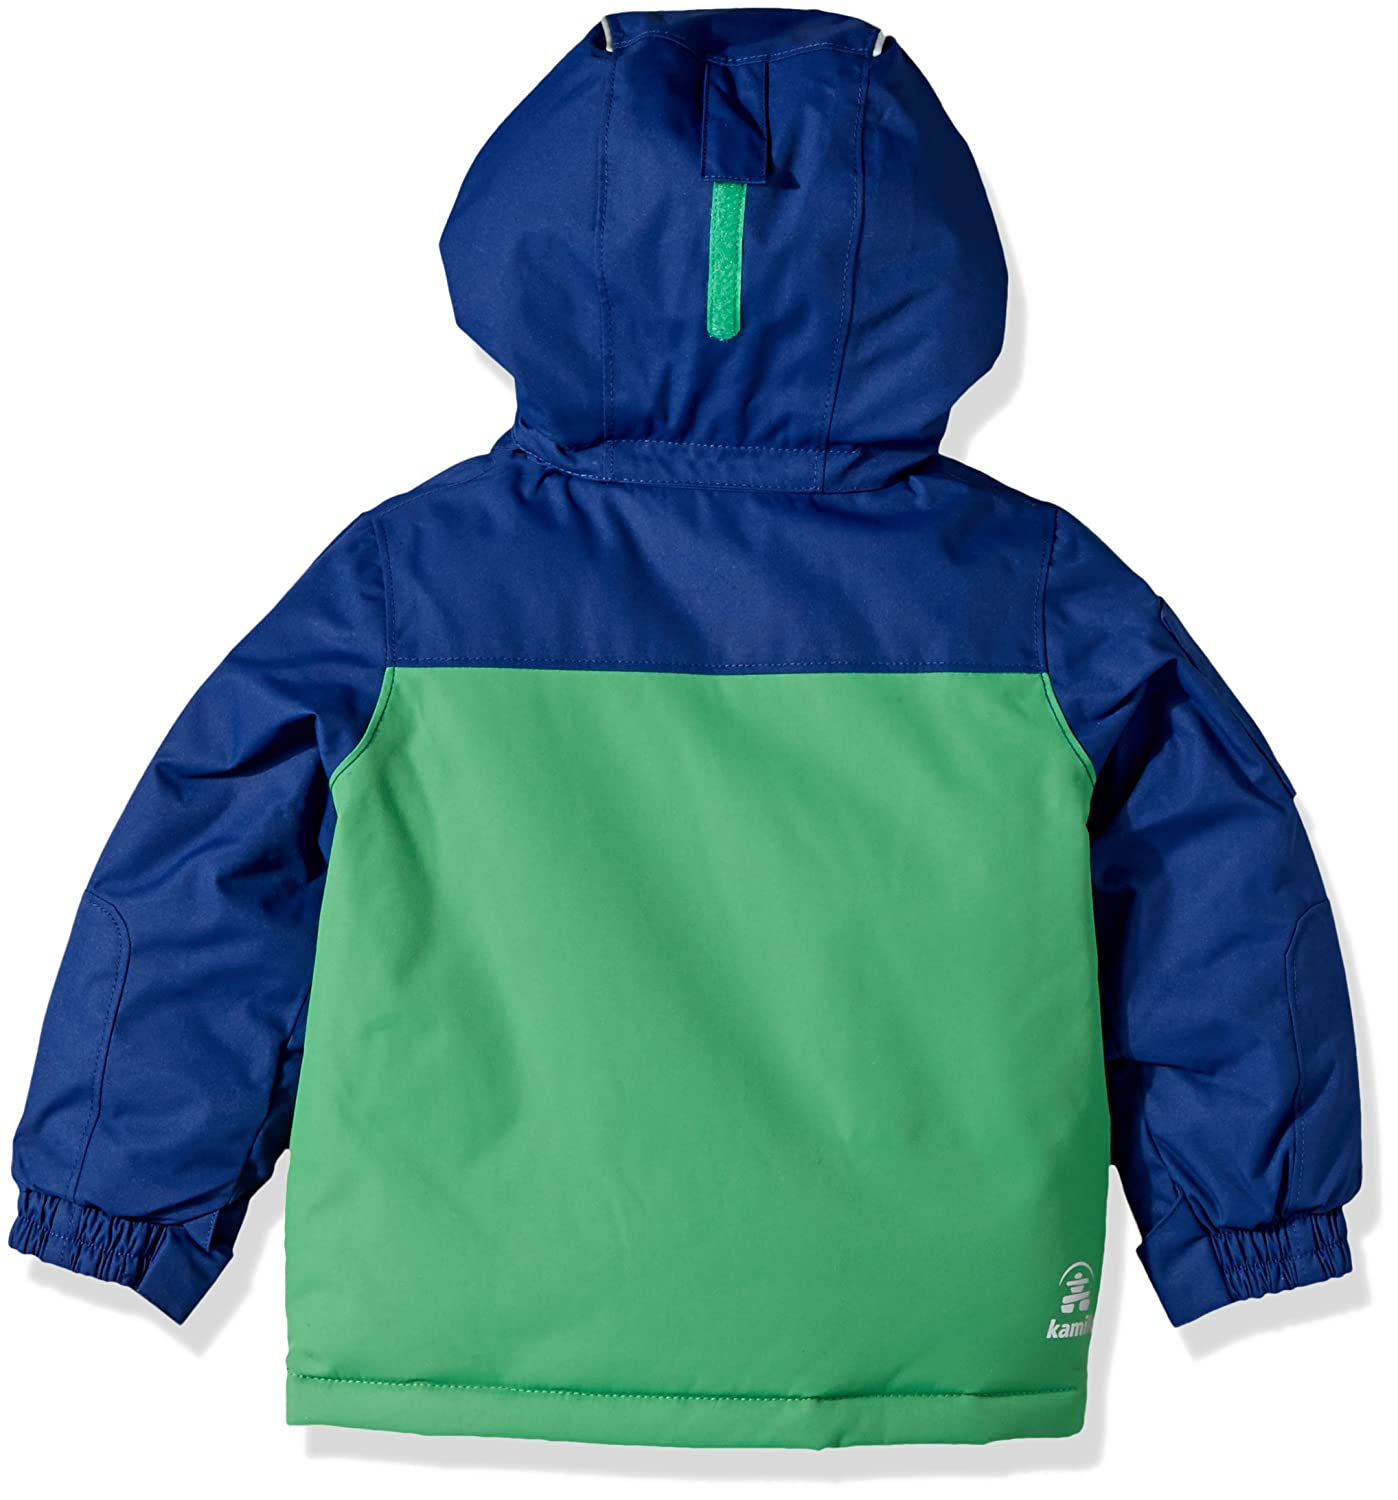 7c8170c77b52 Kamik Winter Apparel Boys Vector Jacket  1540970023-89768  -  36.63